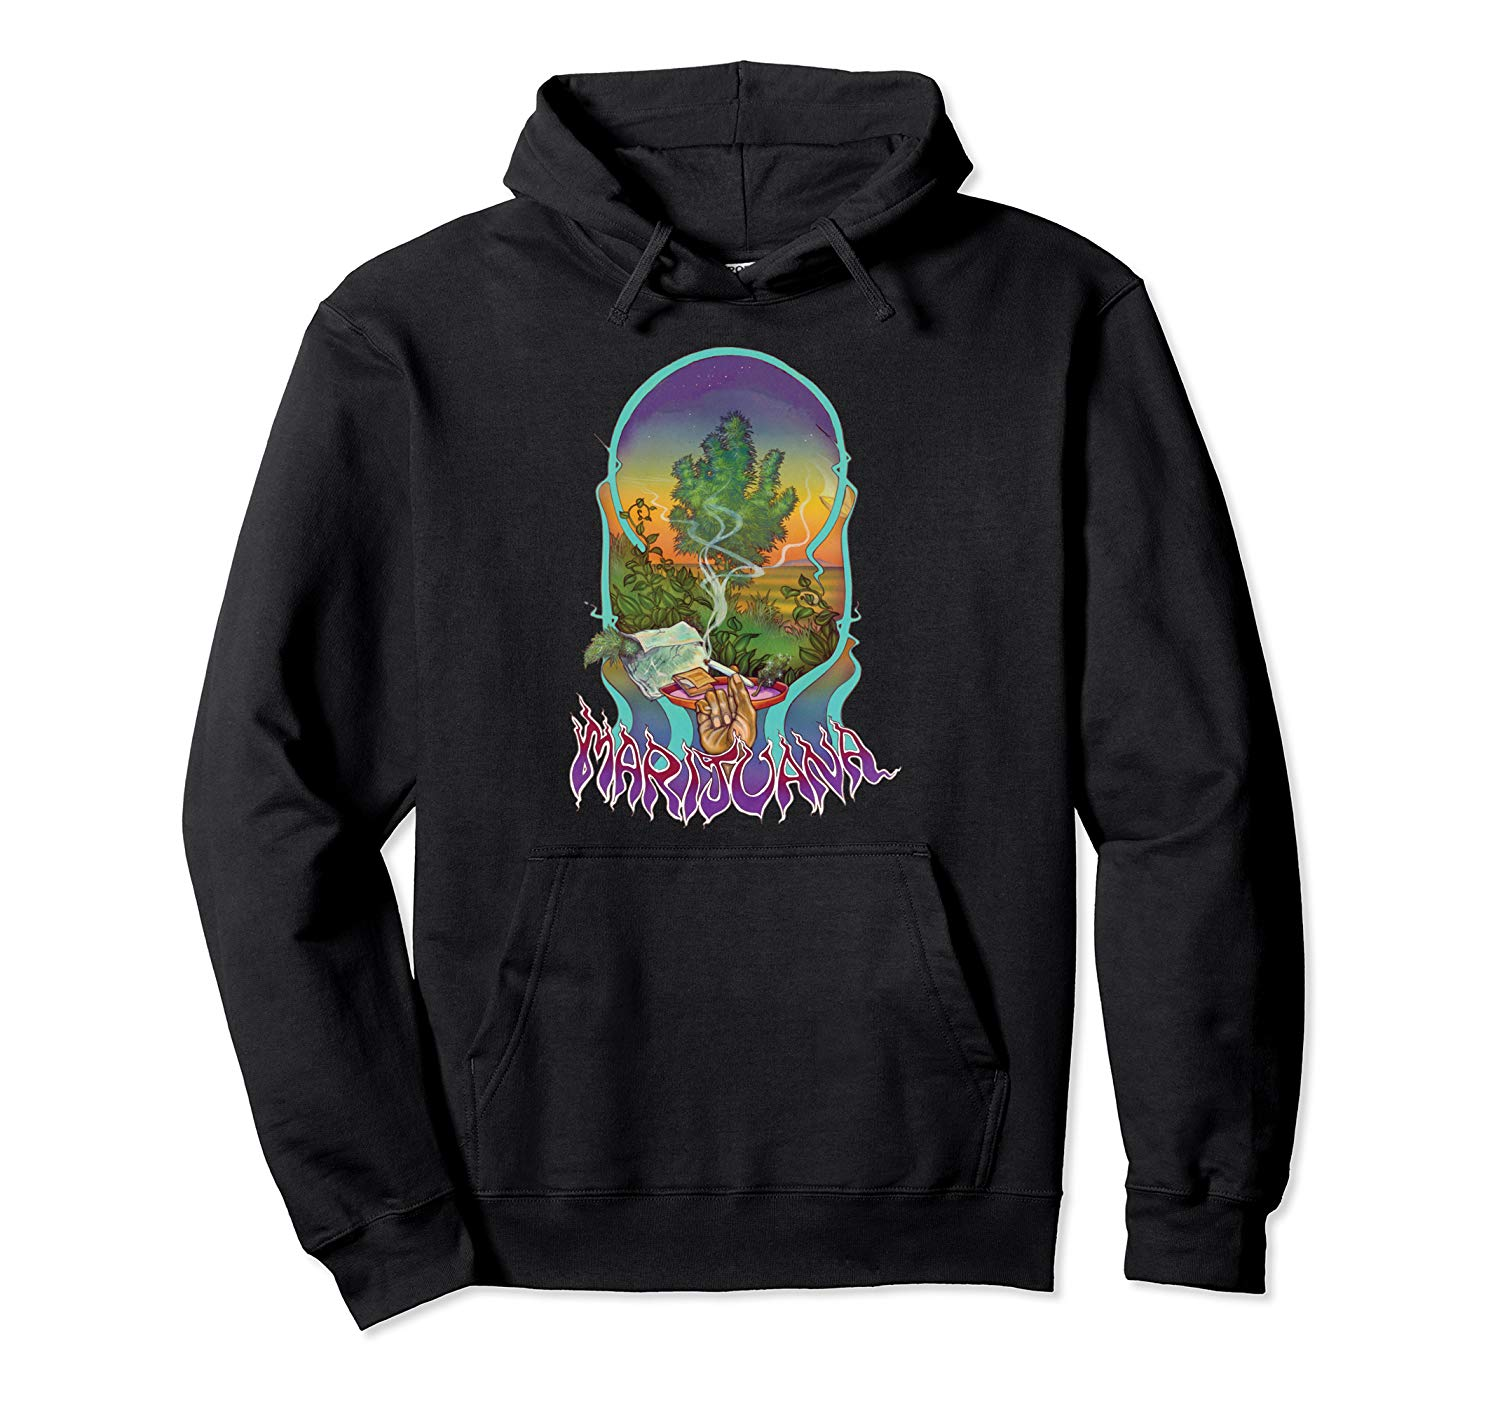 An Image of the black Smoke Marijuana pullover Hoodie from Ganja Outpost